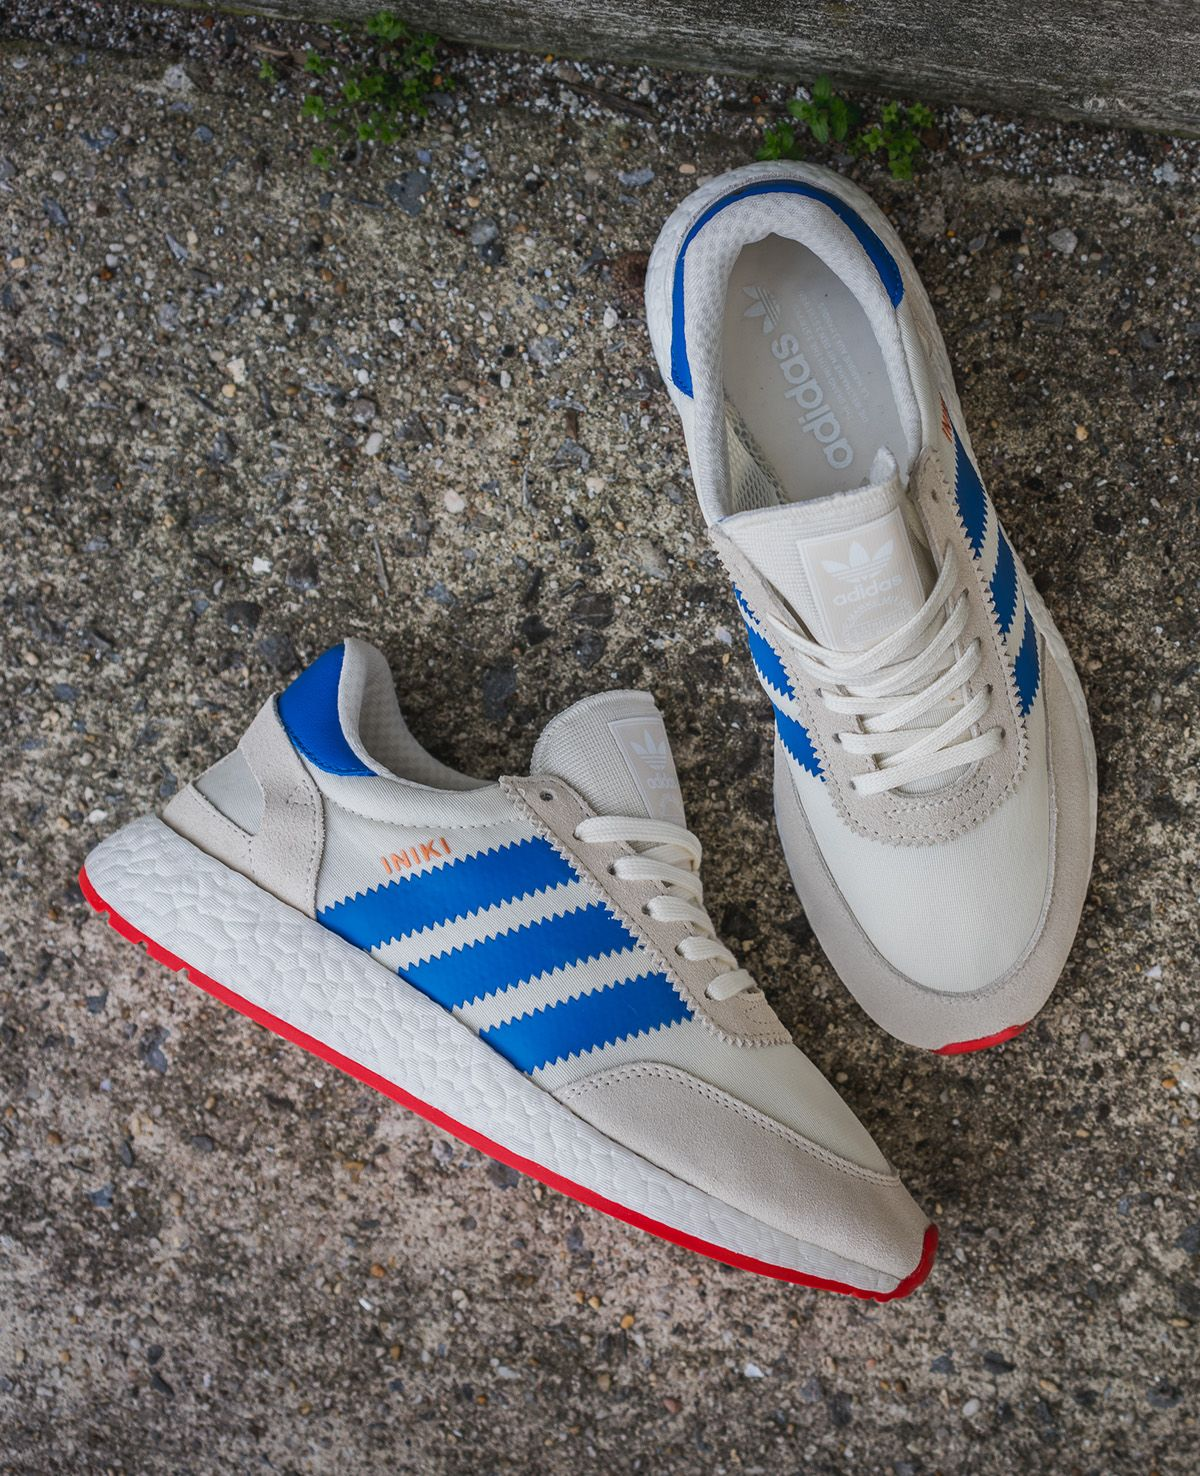 sports shoes 5b285 2b1c0 adidas Iniki Runner Off White, Blue  Core Red - EU Kicks Sneaker  Magazine